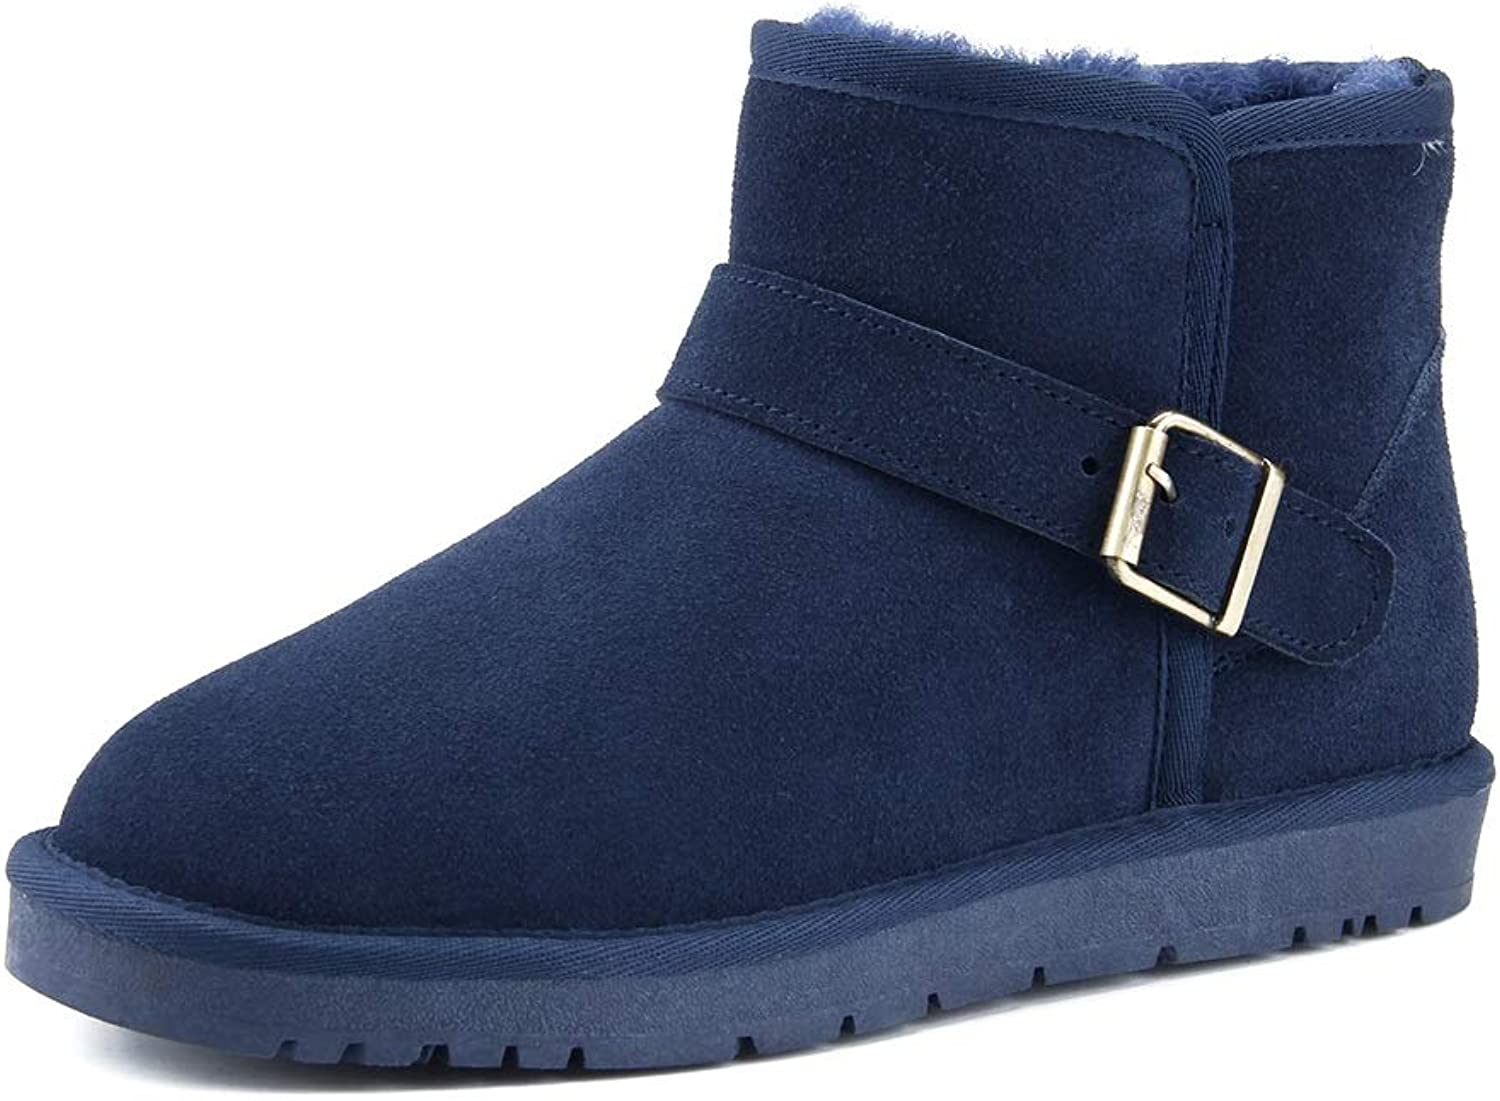 UnicorniO Men's and Women's Fashion Snow Boots Casual Antirust Metal Buttons Winter Faux Fleece Inside Snow Boots (color   Darkbluee, Size   8.5 D(M) US)